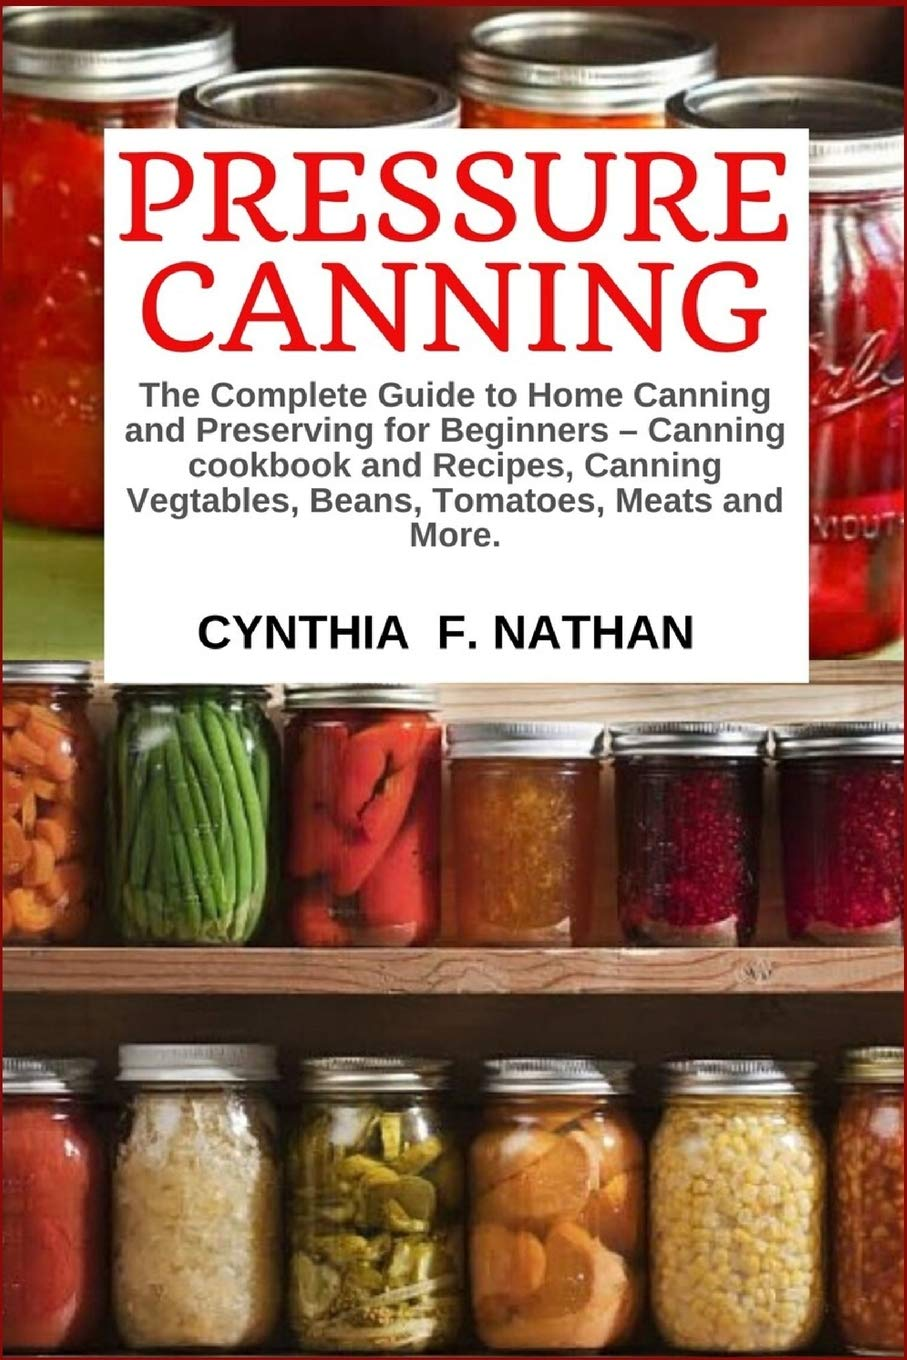 Image OfPressure Canning: The Complete Guide To Home Canning And Preserving For Beginners Canning Cookbook And Recipes, Canning Ve...